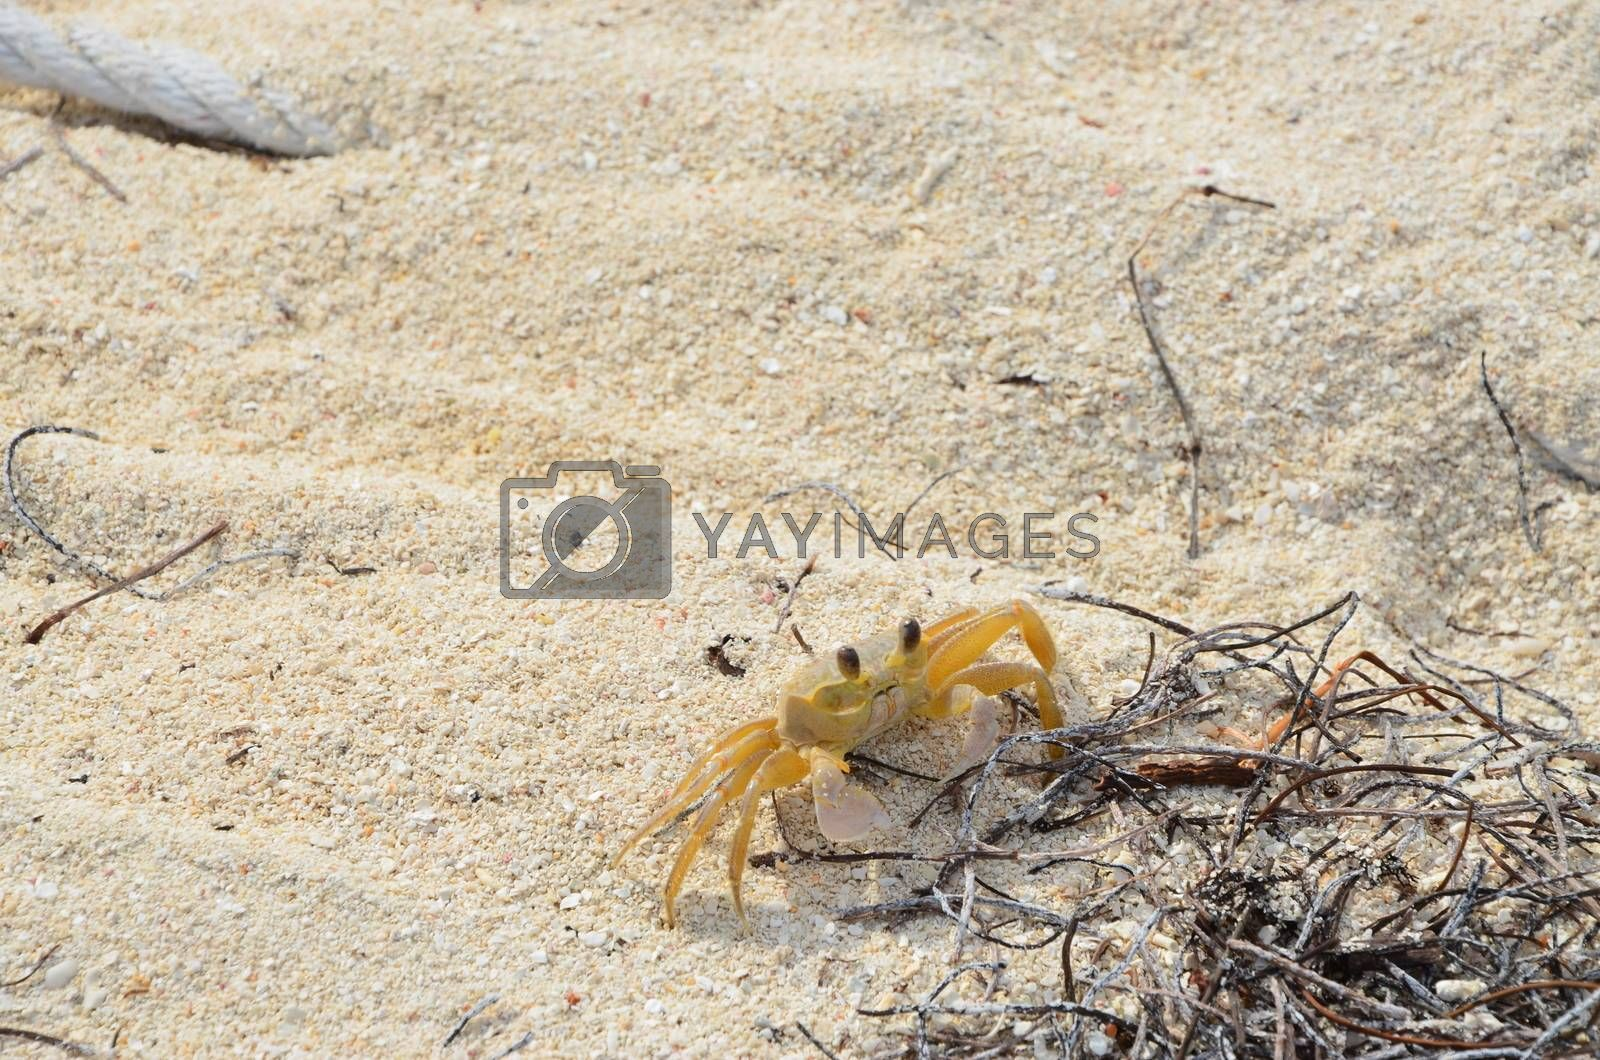 A small yellow crab on the beach of a Florida Key